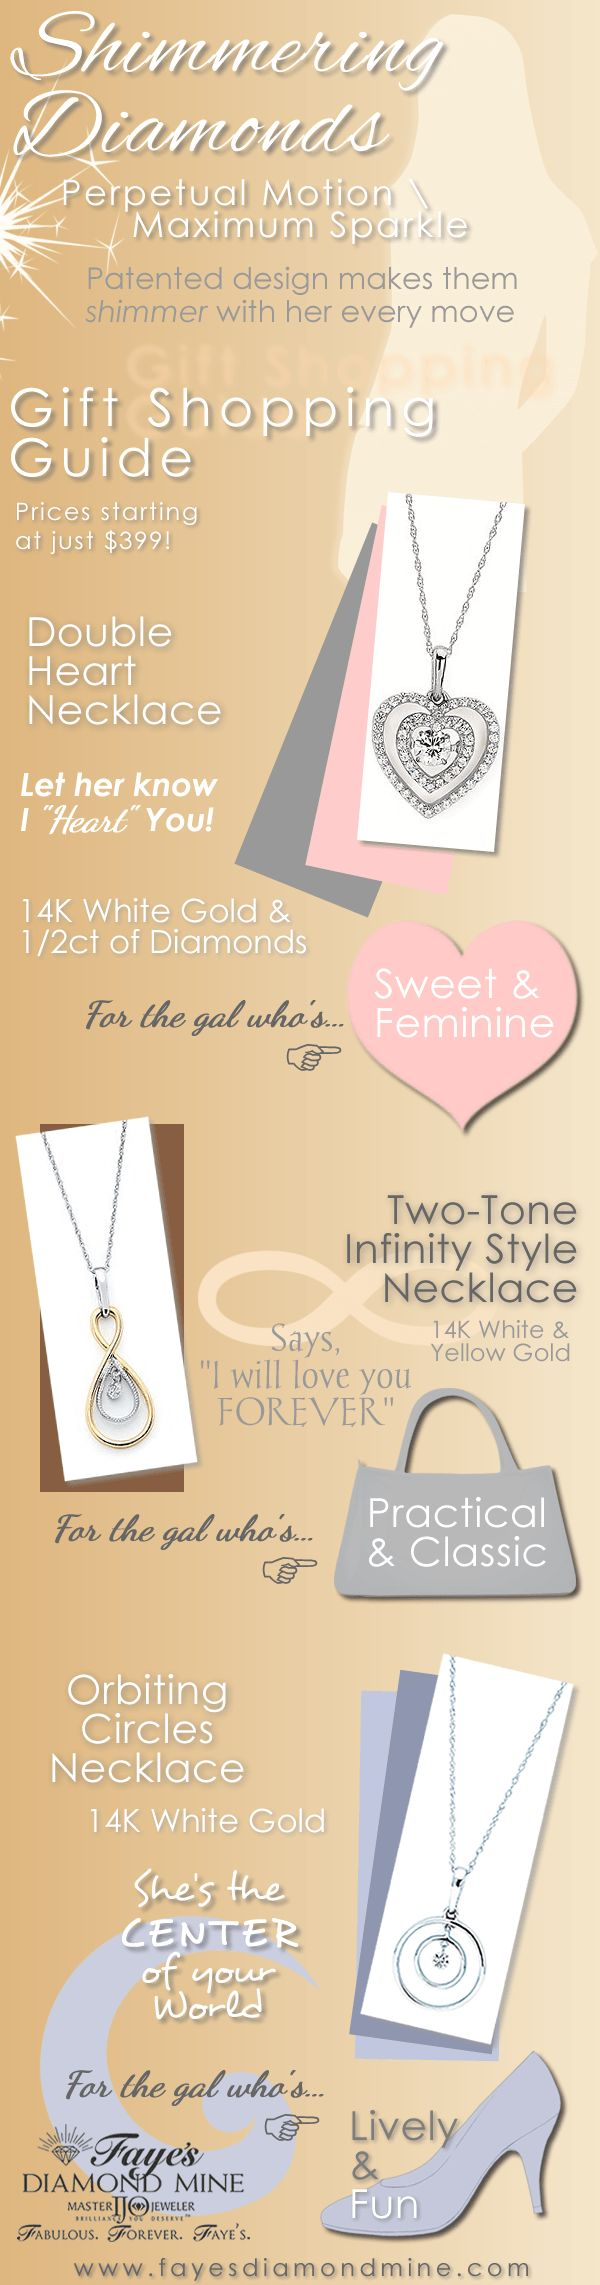 best designs from fayeus images on pinterest diamond mines